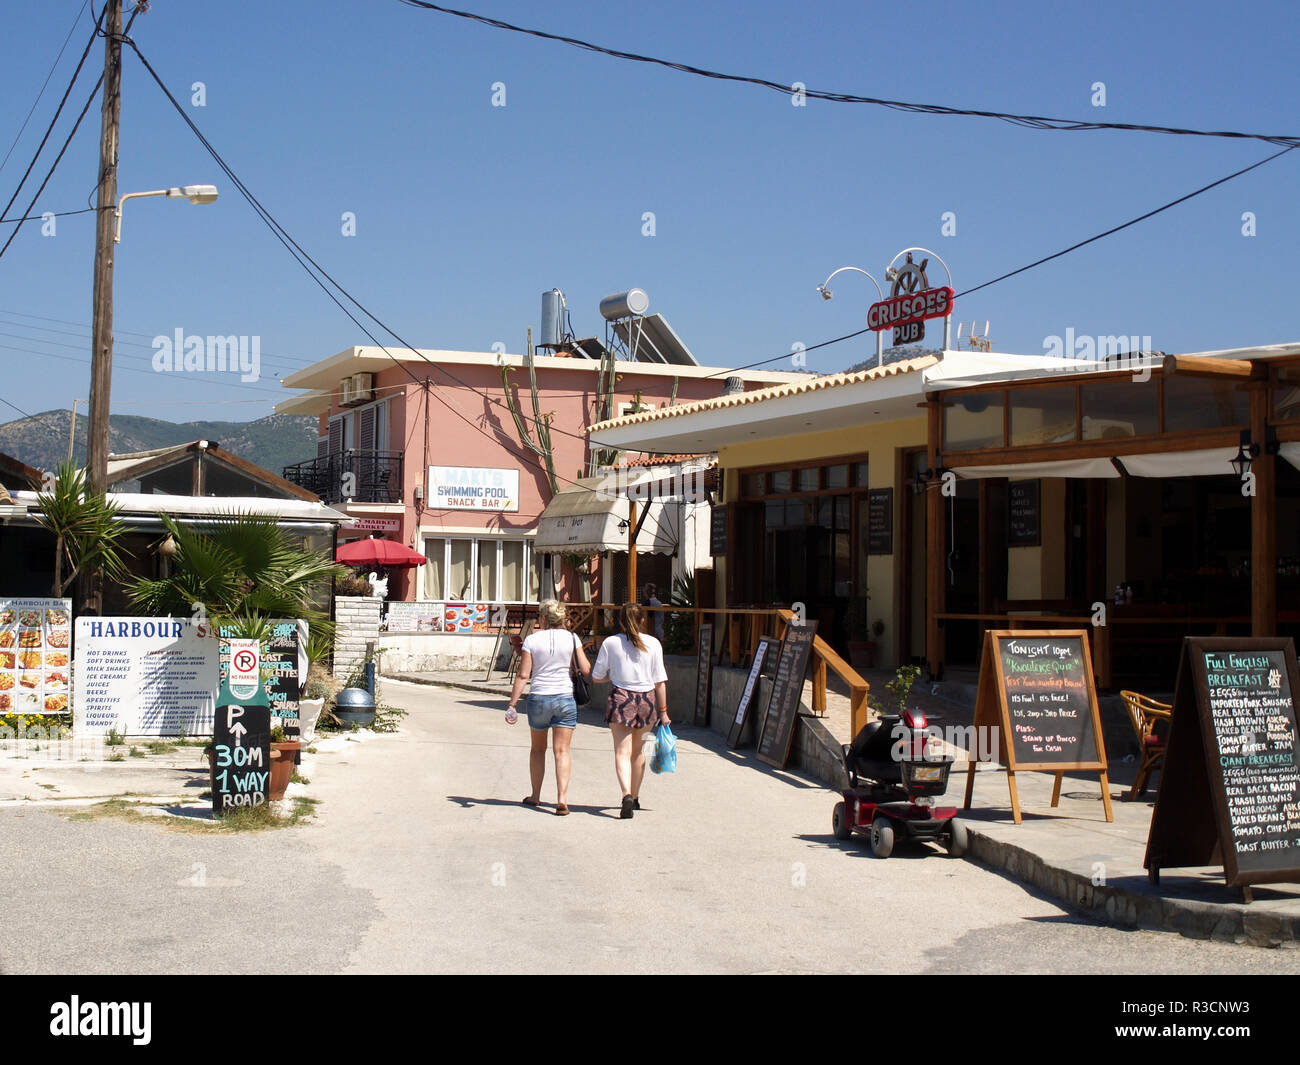 Tourists walking along the beach road in Roda, Corfu, Greece between Crusoes Pub and The Harbour Bar - Stock Image